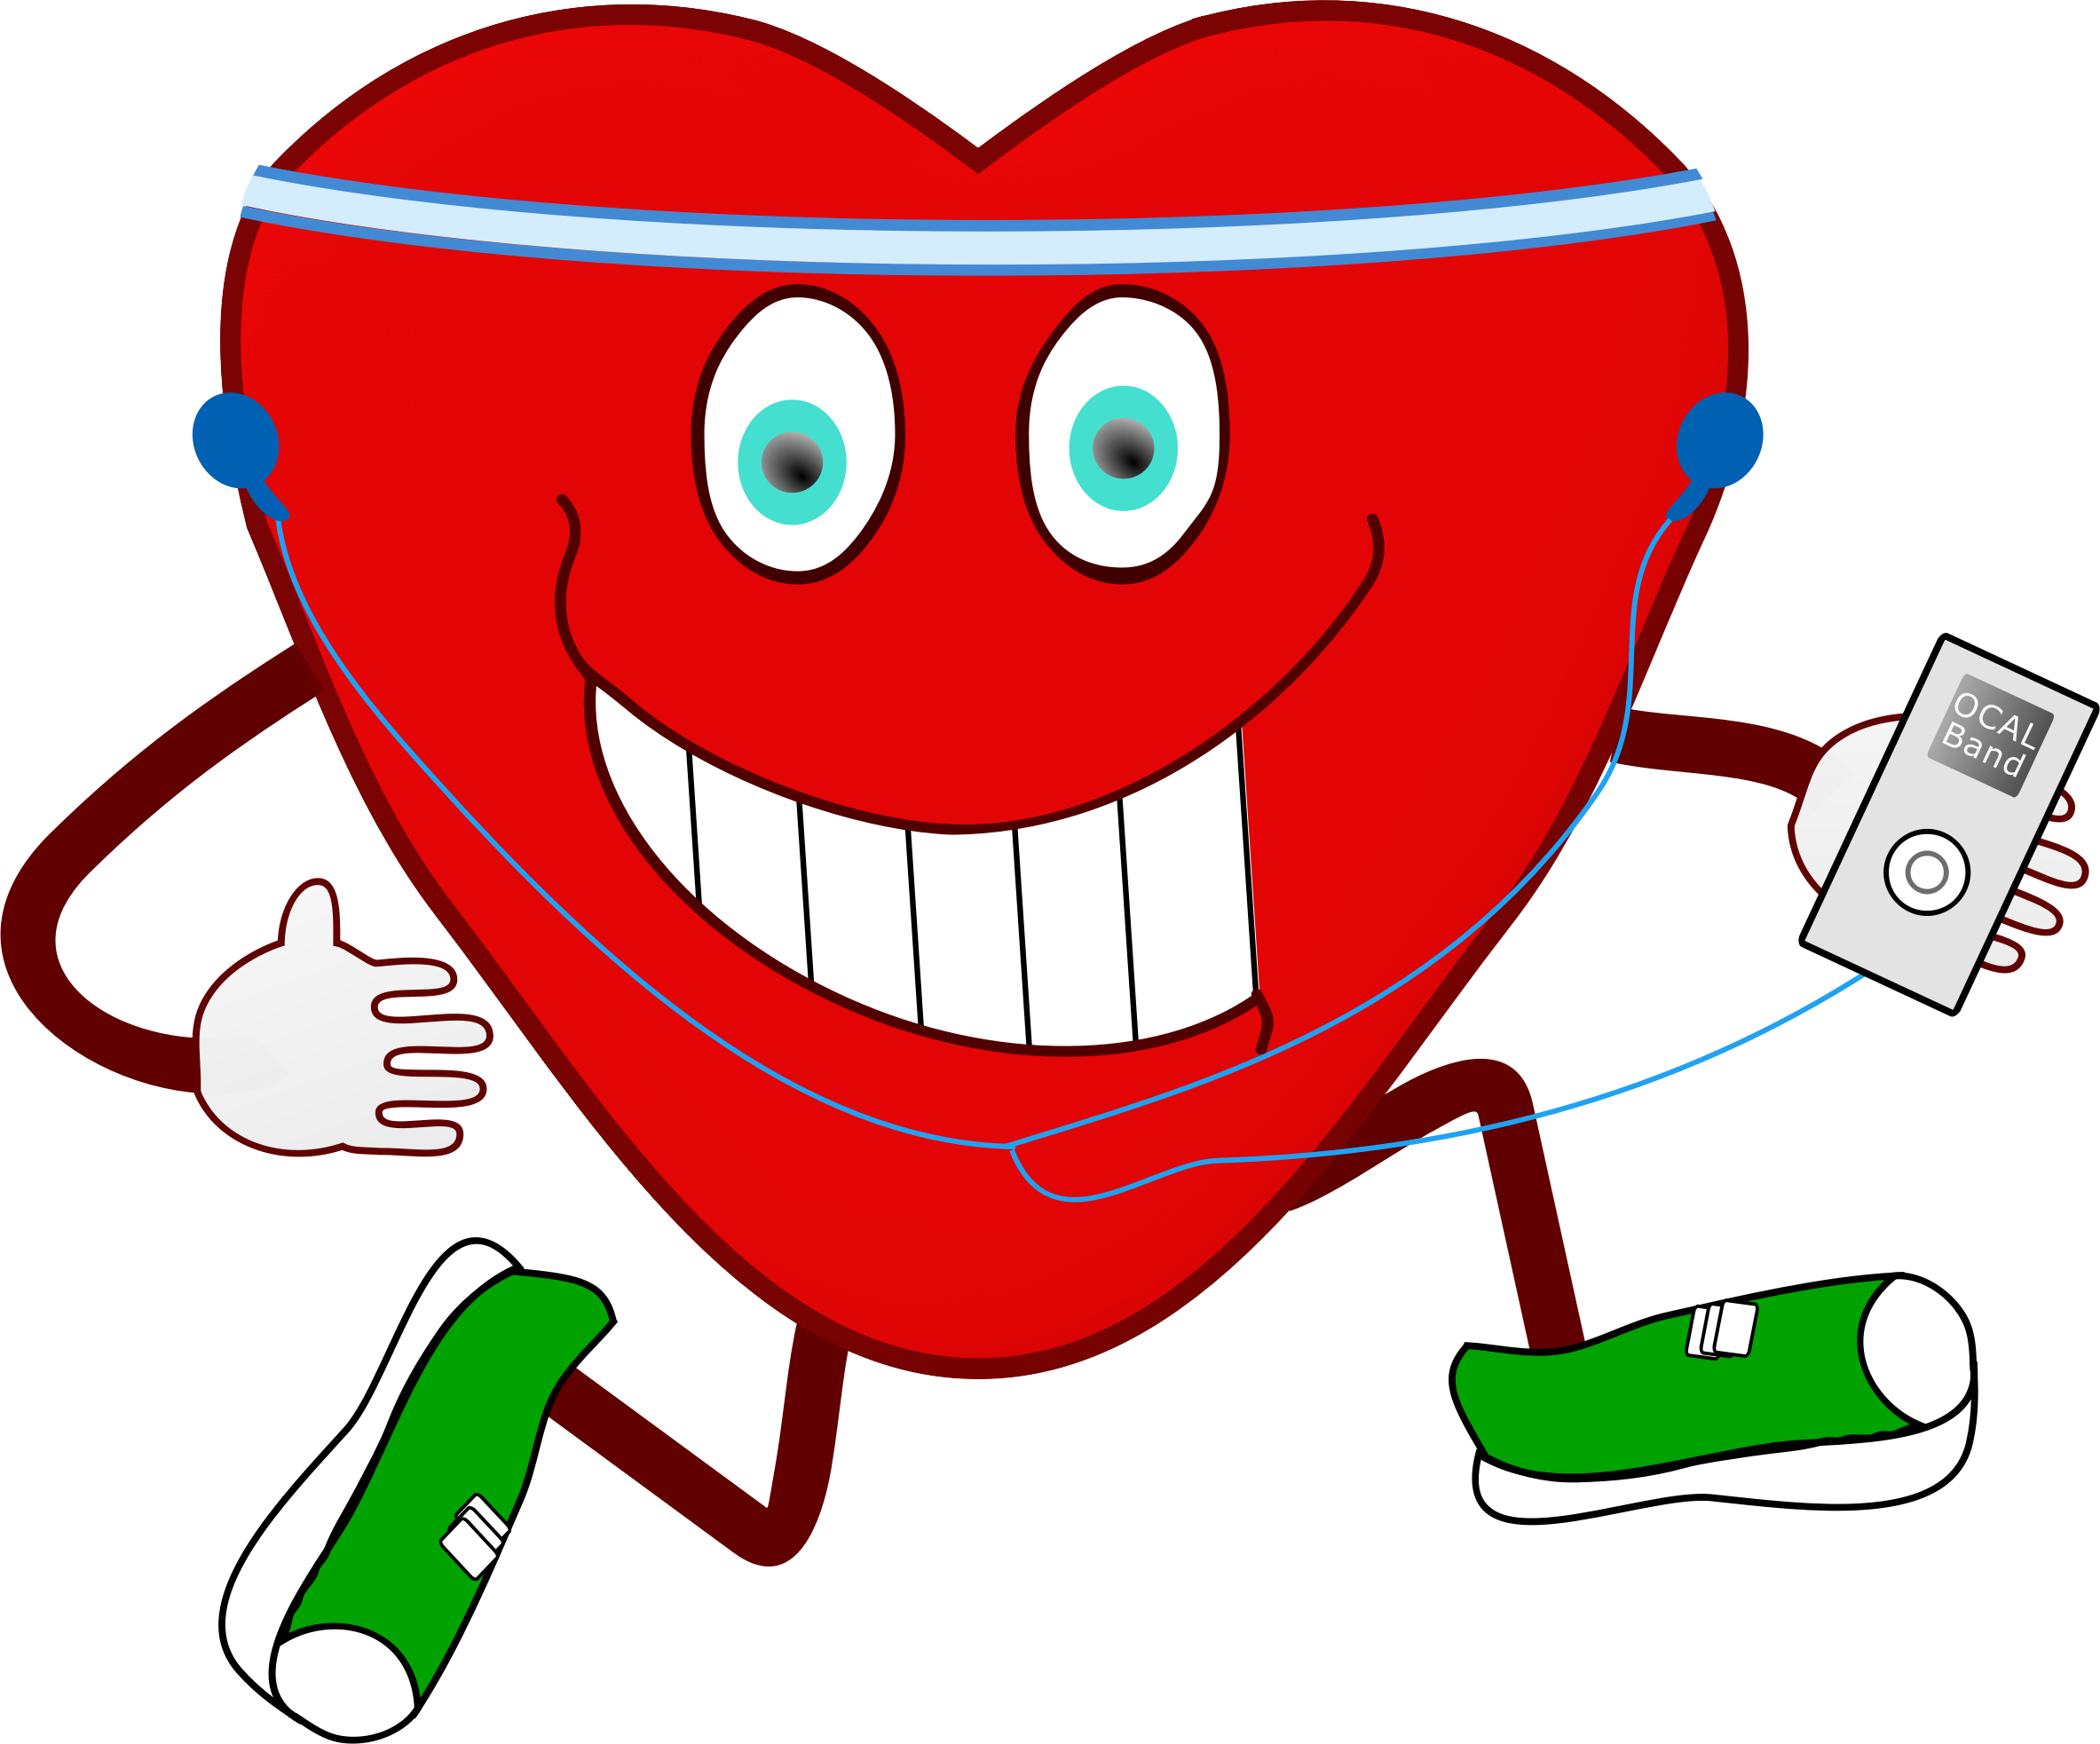 Exercise clipart heart, Exercise heart Transparent FREE for.